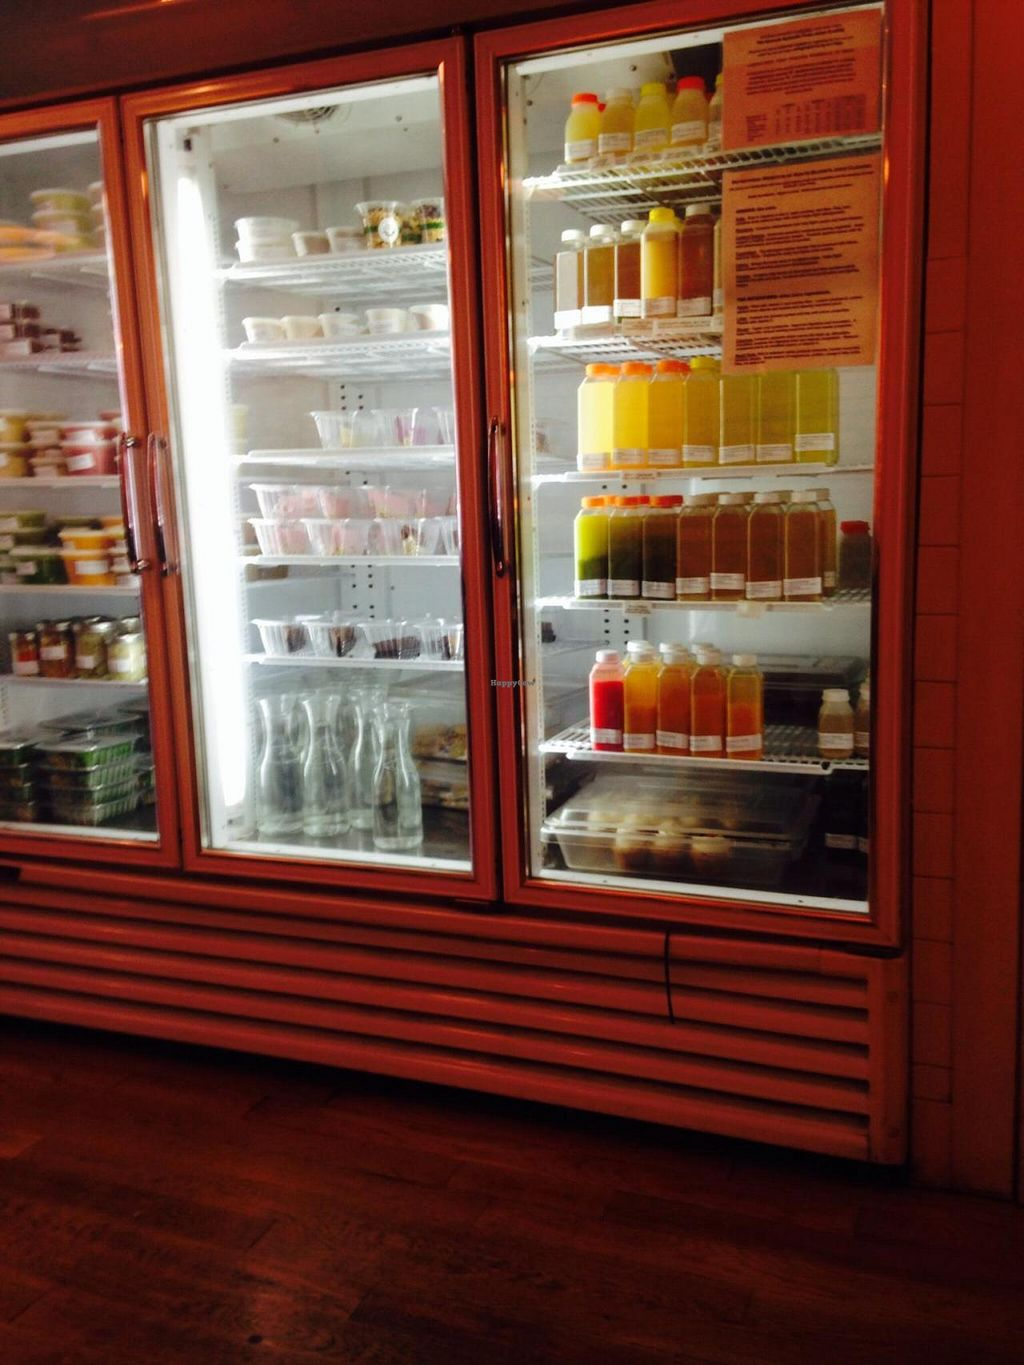 """Photo of CLOSED: Sun in Bloom  by <a href=""""/members/profile/cookiem"""">cookiem</a> <br/>Juices and prepared food ready to purchase and consume <br/> August 24, 2014  - <a href='/contact/abuse/image/14366/78150'>Report</a>"""